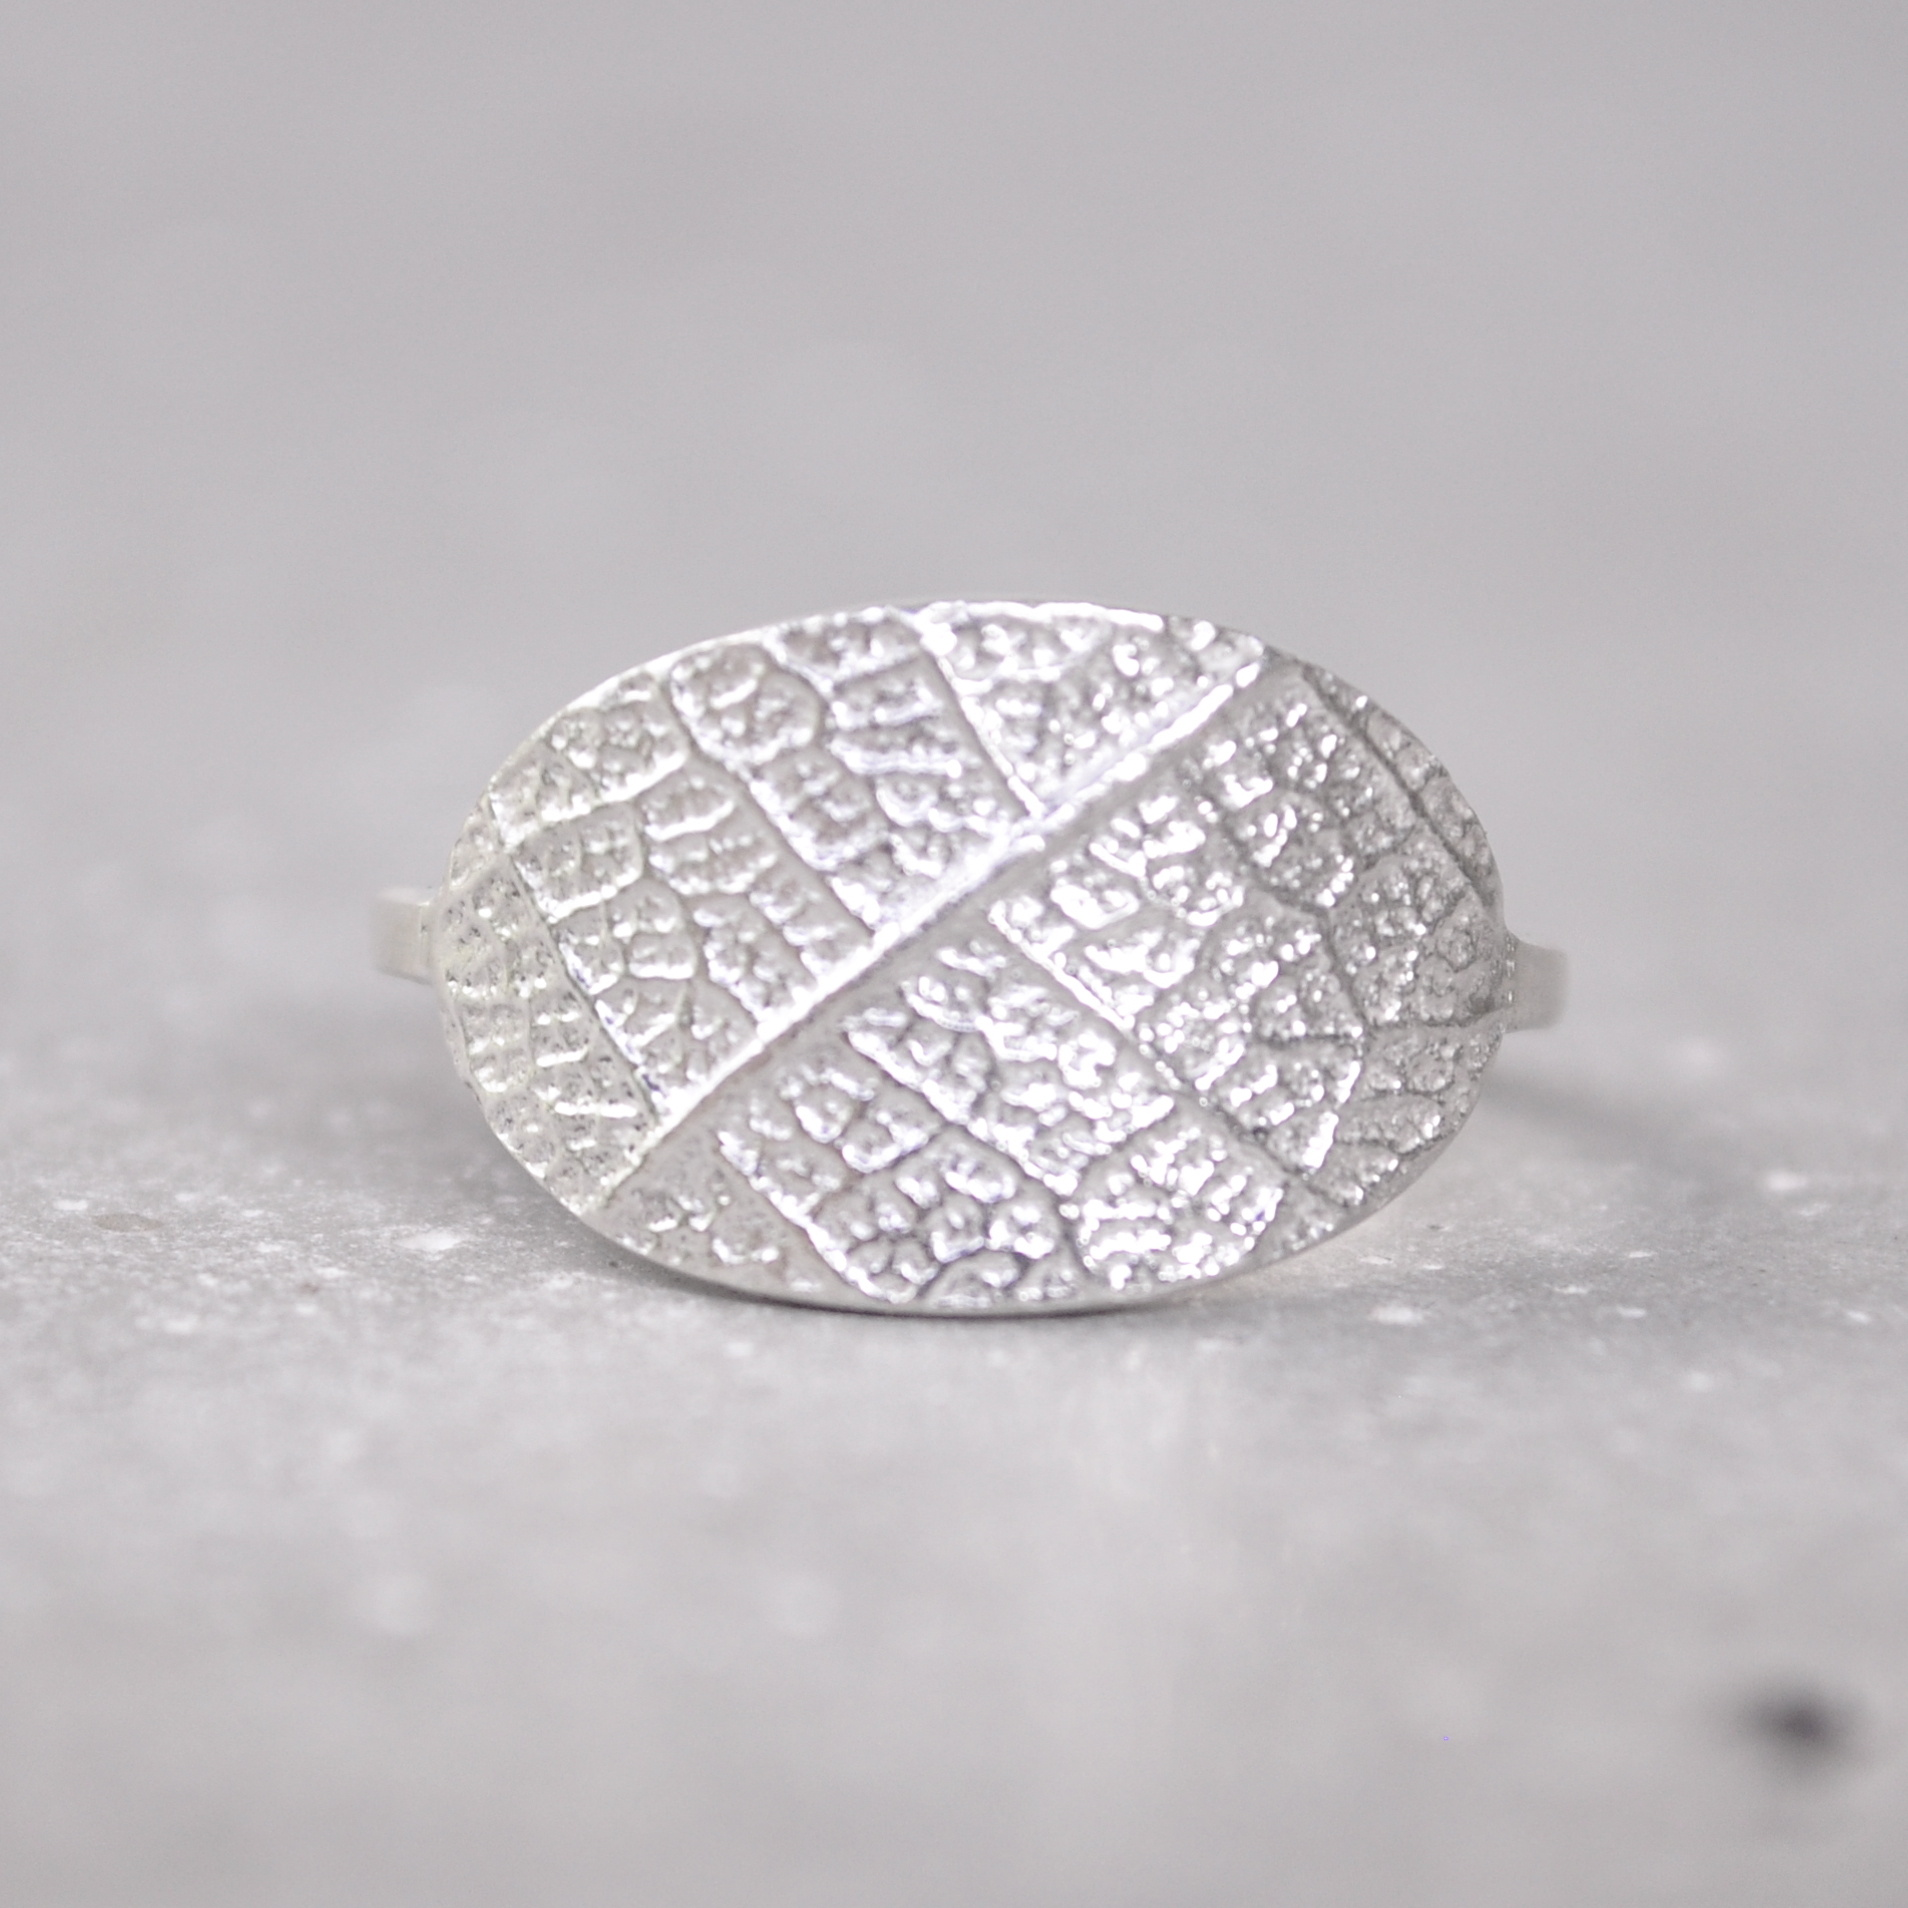 Leaf textured Oval Curvy